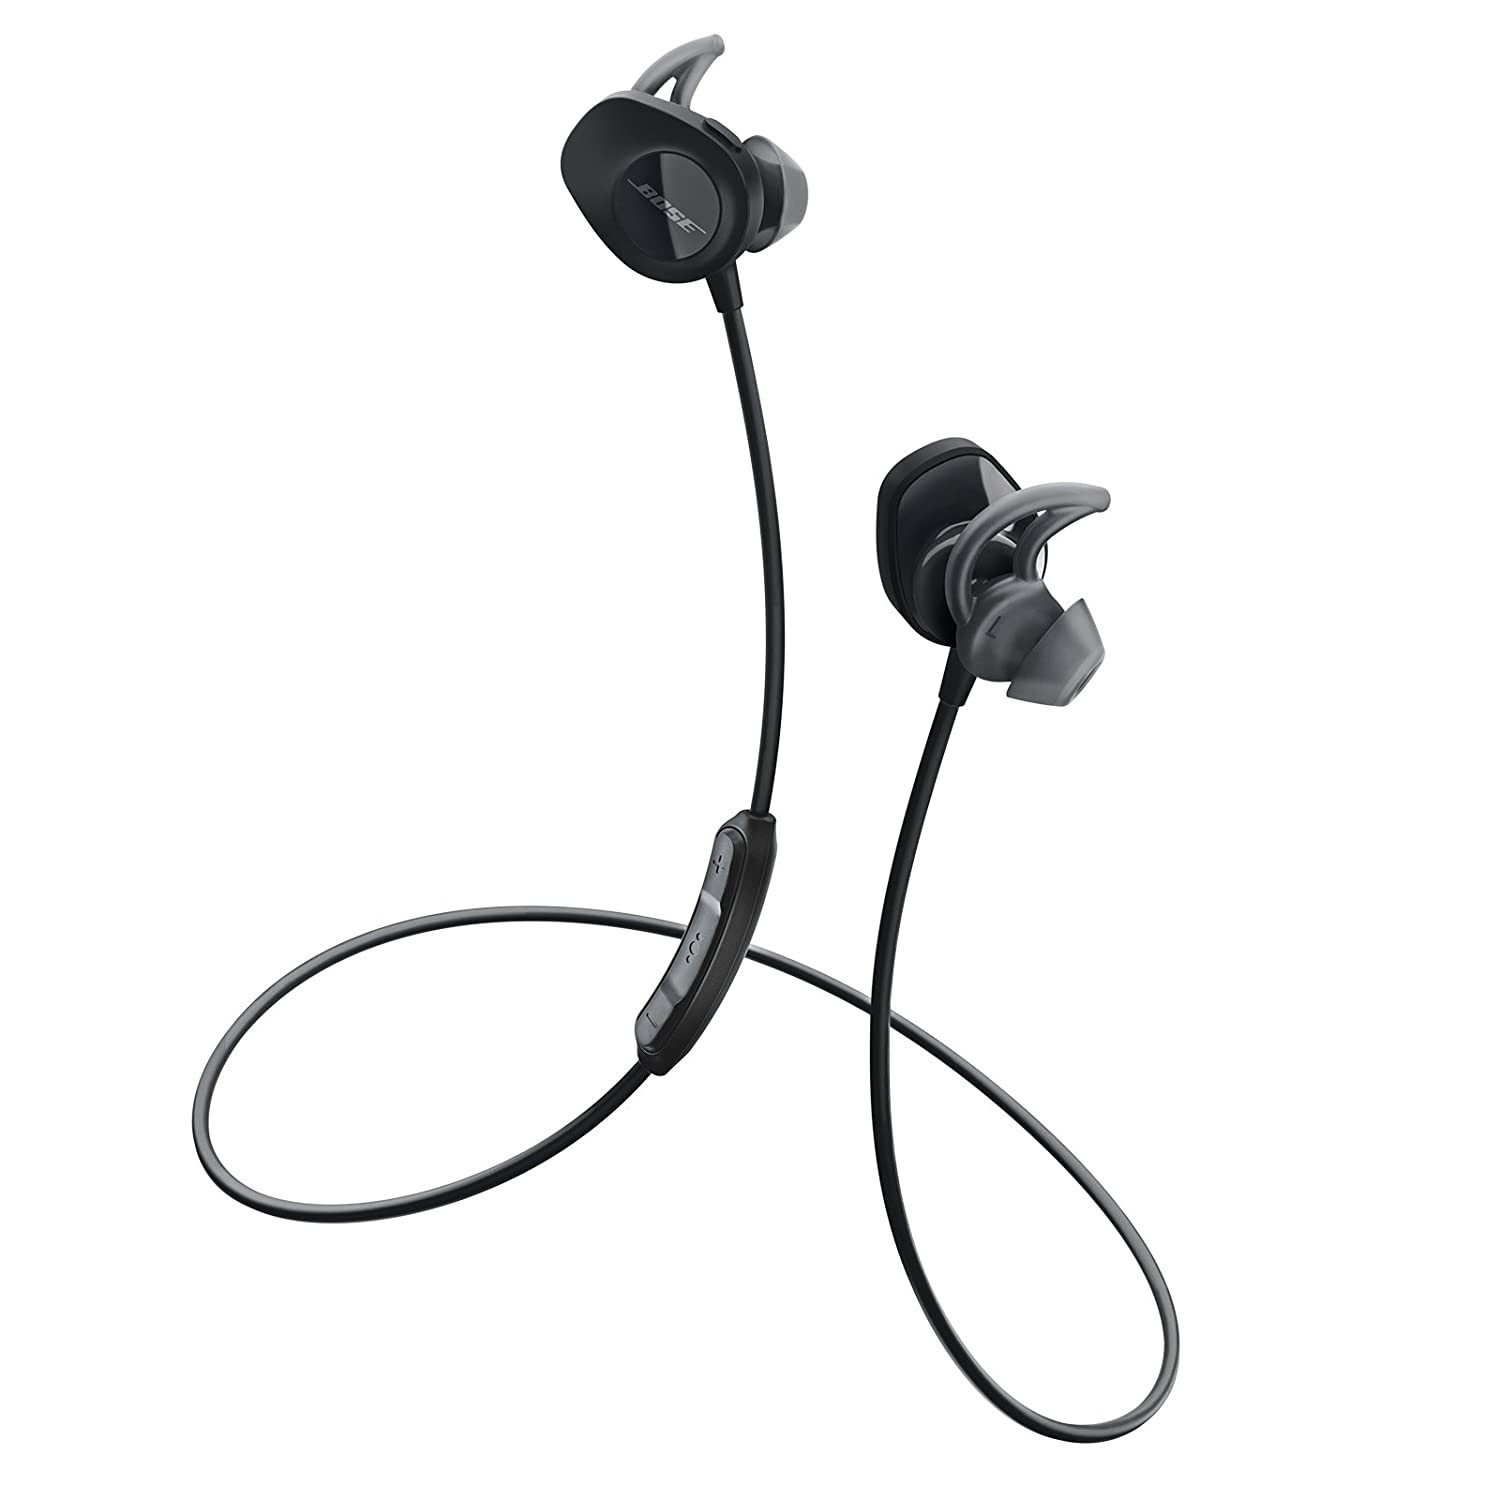 Bose SoundSport Black Friday Deal 2020